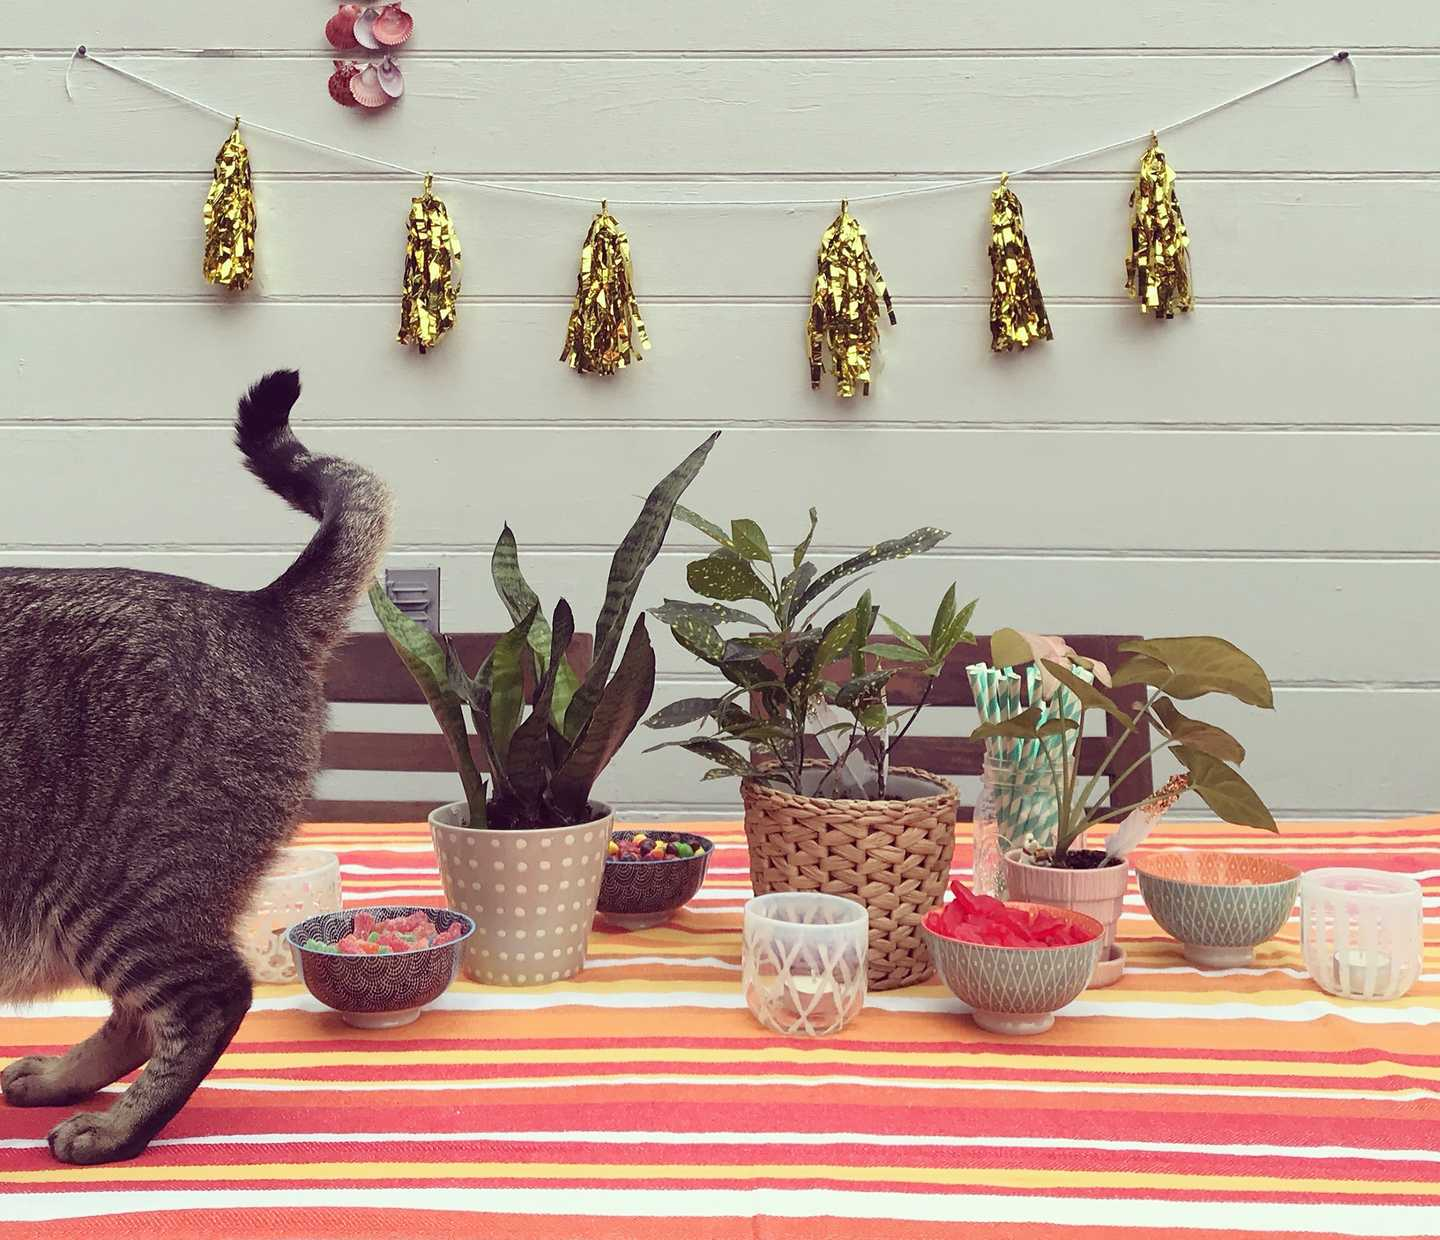 Cat up on table with decorations and treats